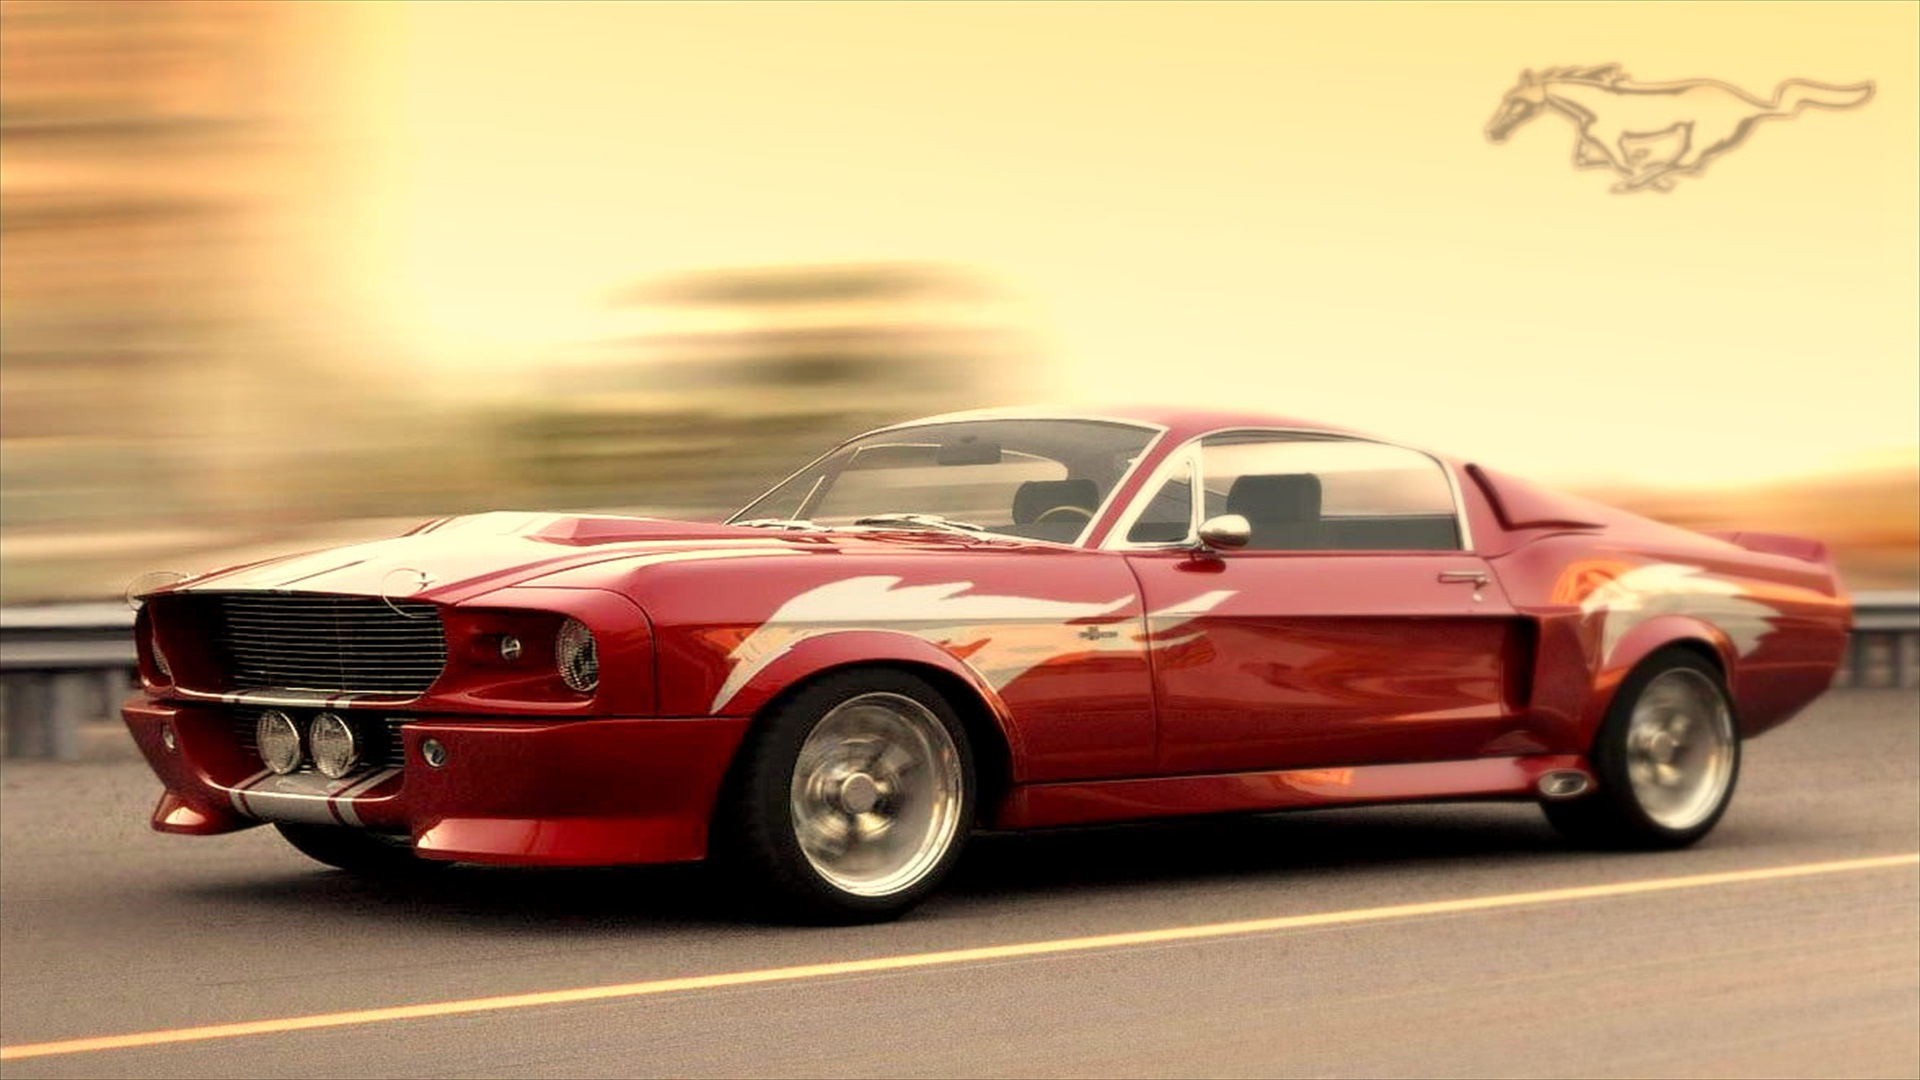 Mustang 1967 Wallpaper >> 1967 Shelby Gt500 Wallpaper - WallpaperSafari